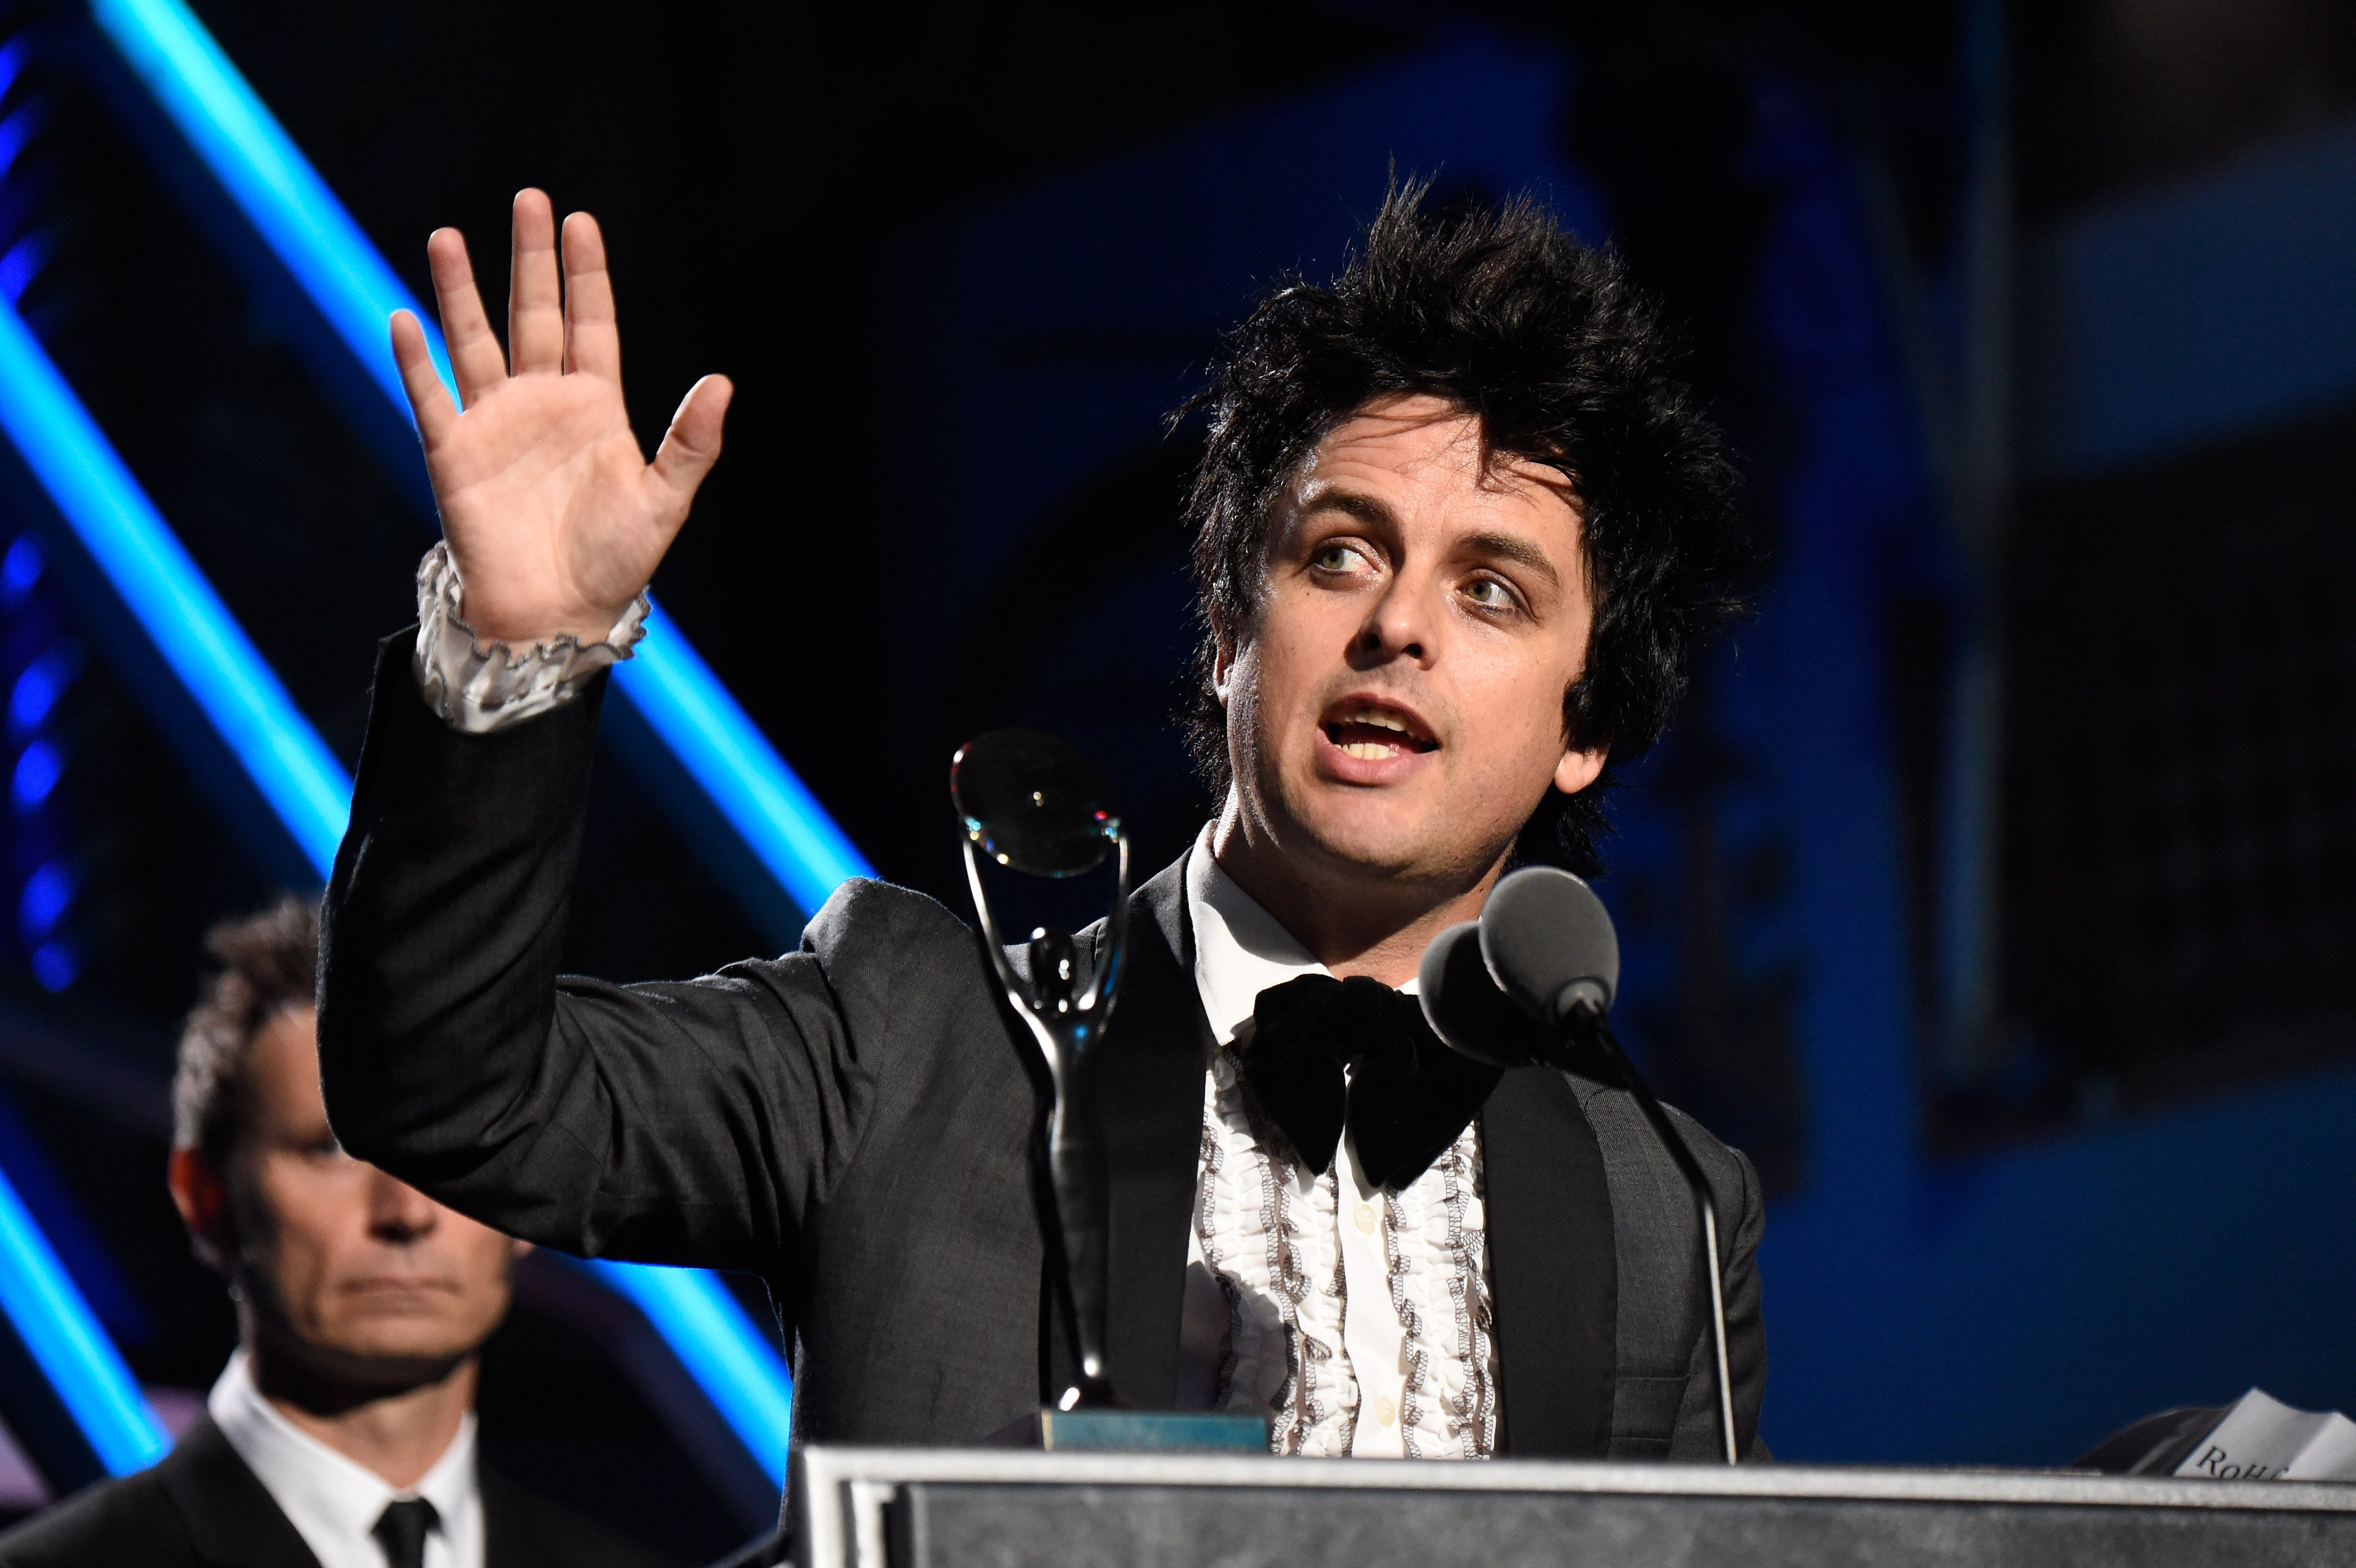 CLEVELAND, OH - APRIL 18:  Billie Joe Armstrong speaks onstage during the 30th Annual Rock And Roll Hall Of Fame Induction Ceremony at Public Hall on April 18, 2015 in Cleveland, Ohio.  (Photo by Kevin Mazur/WireImage for Rock and Roll Hall of Fame)